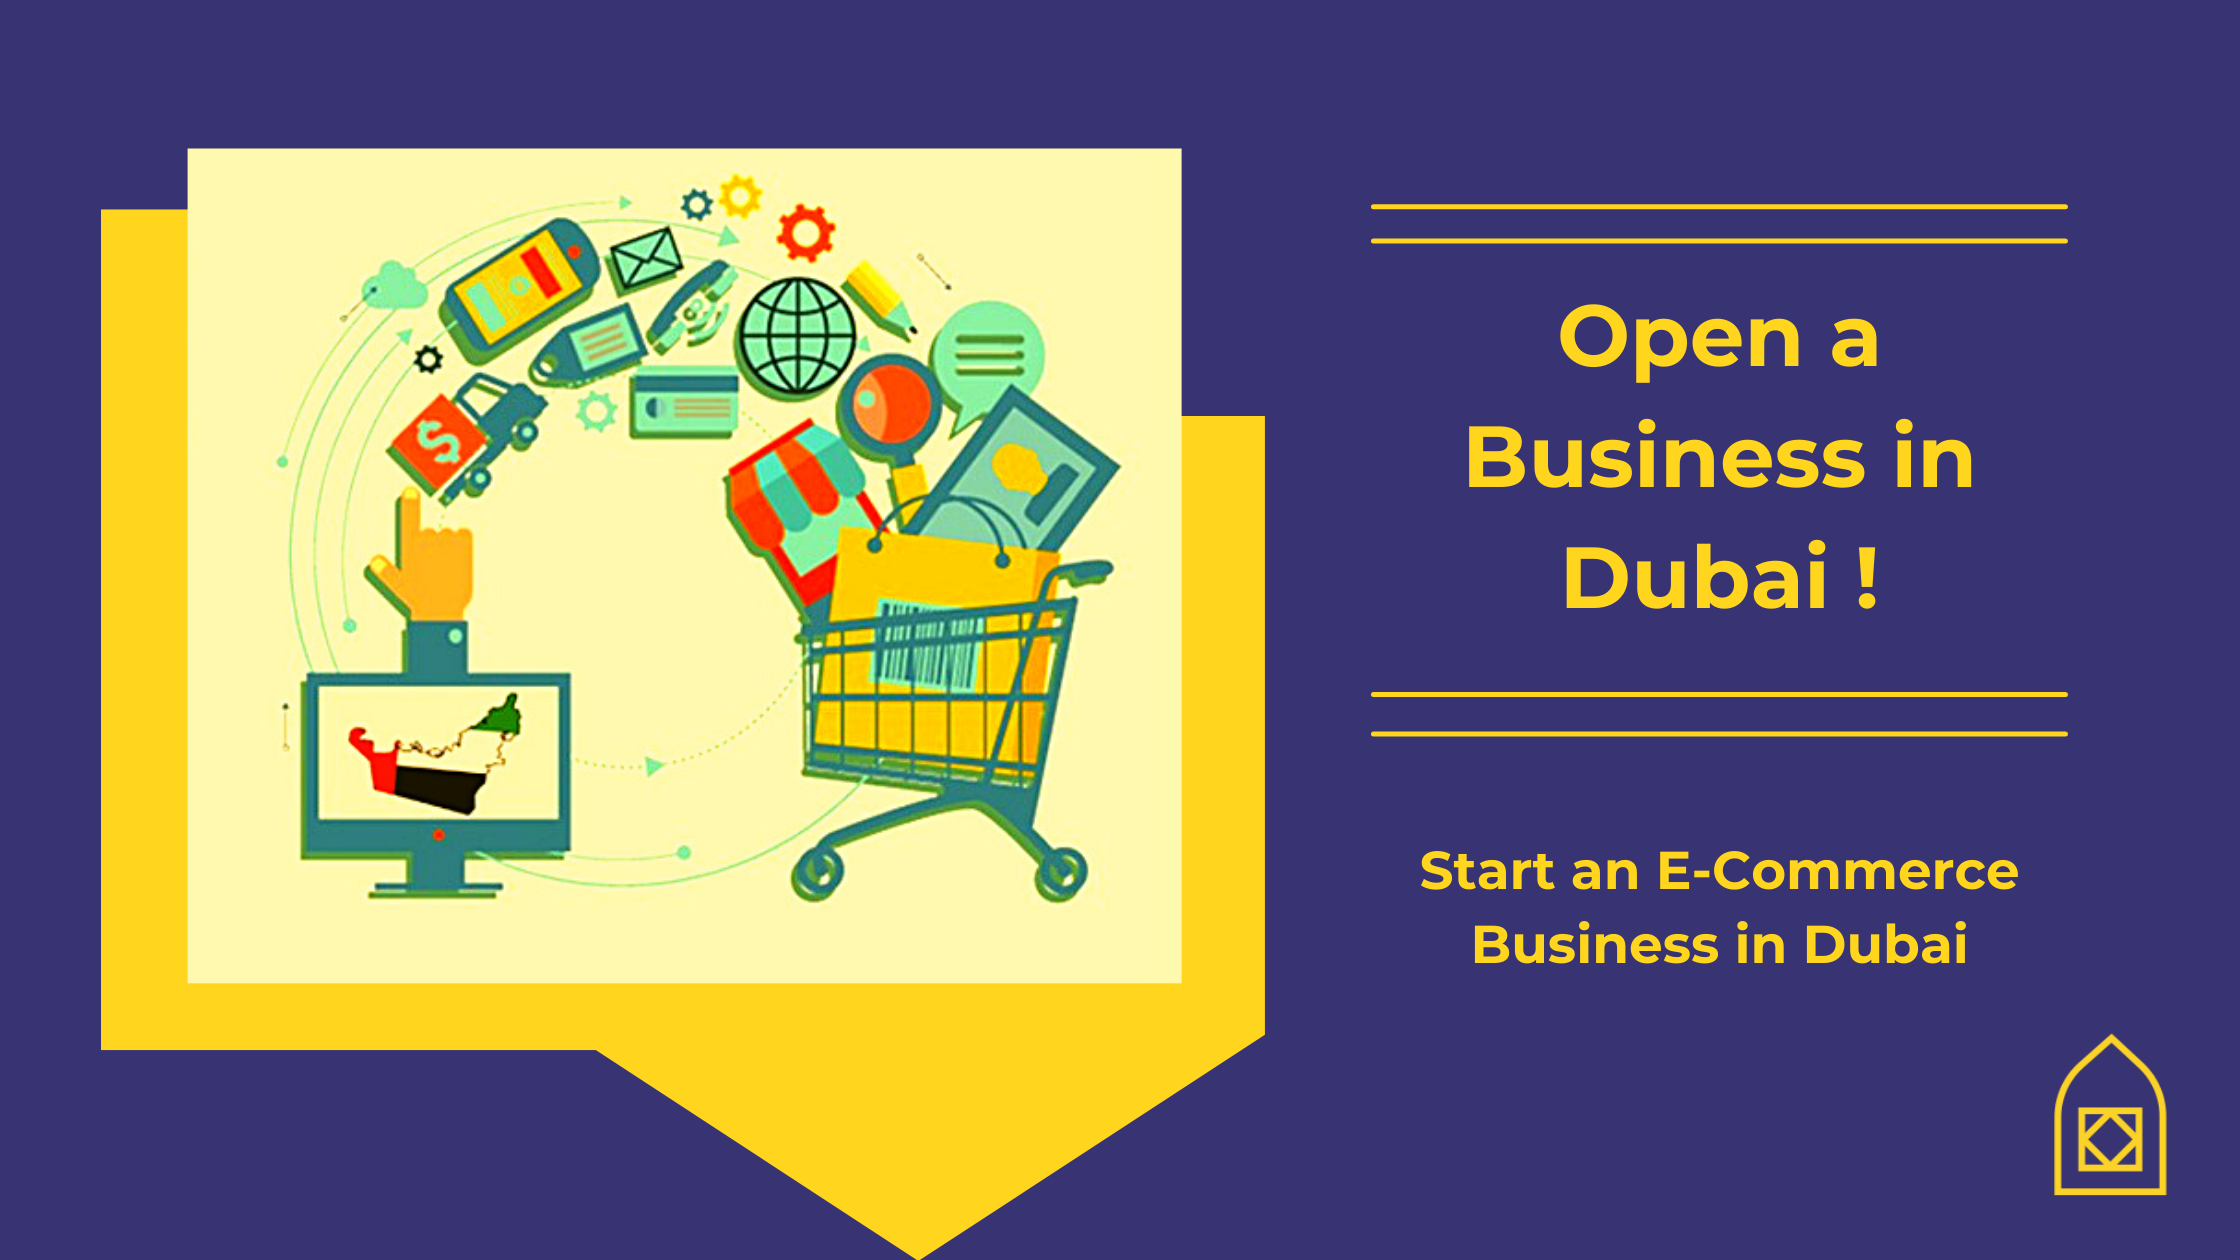 Open a business in Dubai- Start E-commerce in Dubai